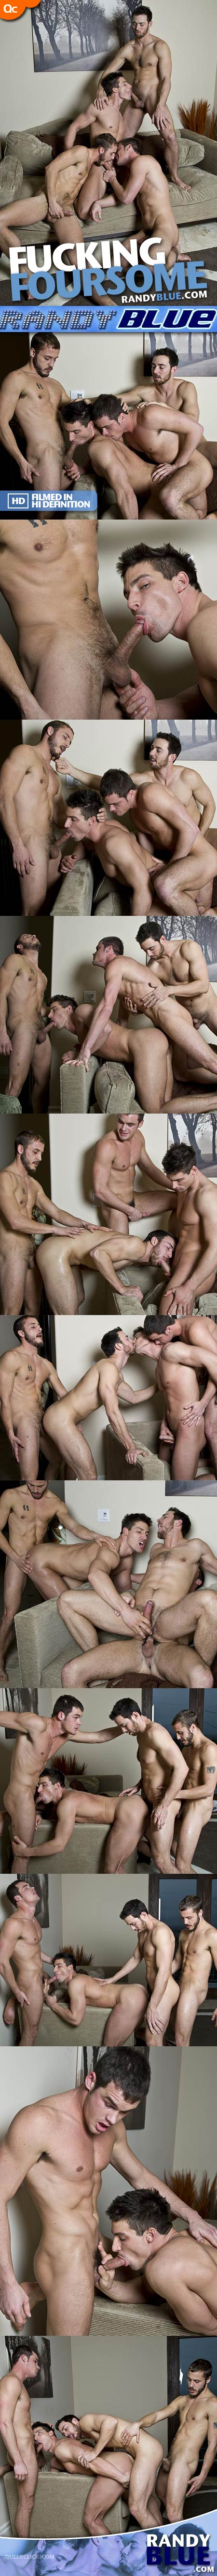 Randy Blue: Fucking Foursome